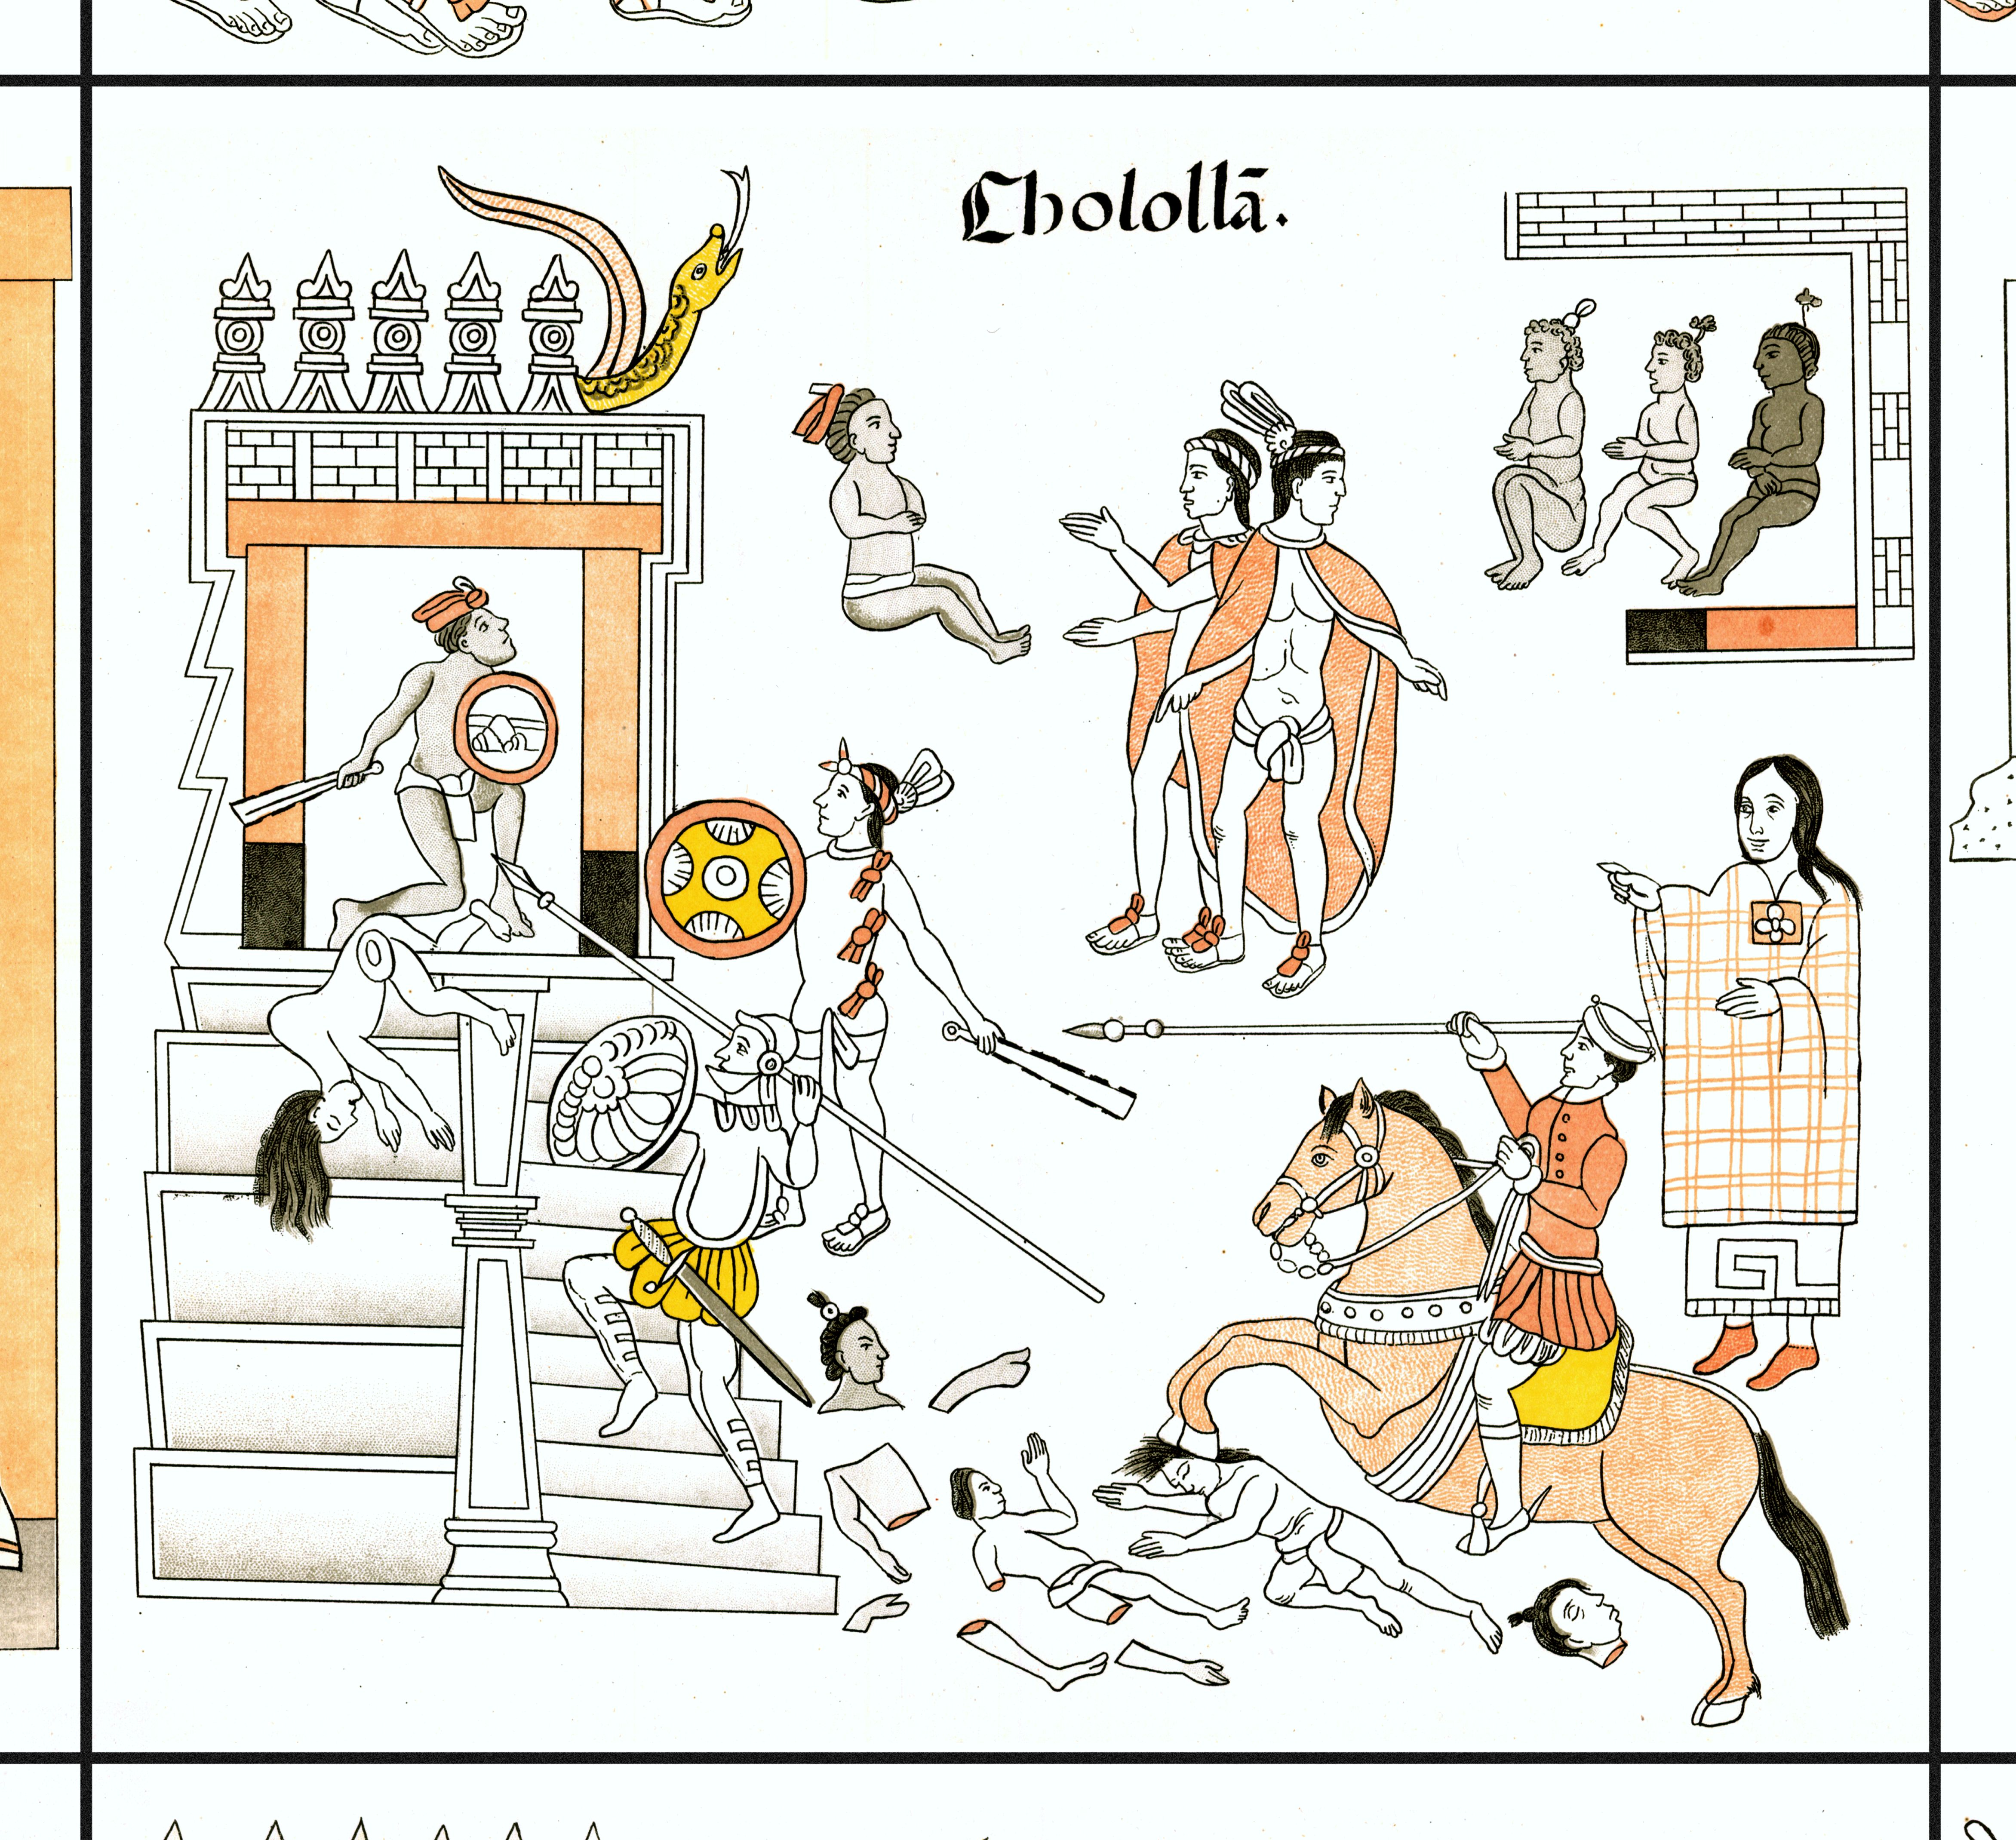 FIGURE 2. Cell 9: Malinche, standing to the right and wearing red shoes, directs the European-Tlaxcalan attack against the Temple of Quetzalcoatl in Cholula.